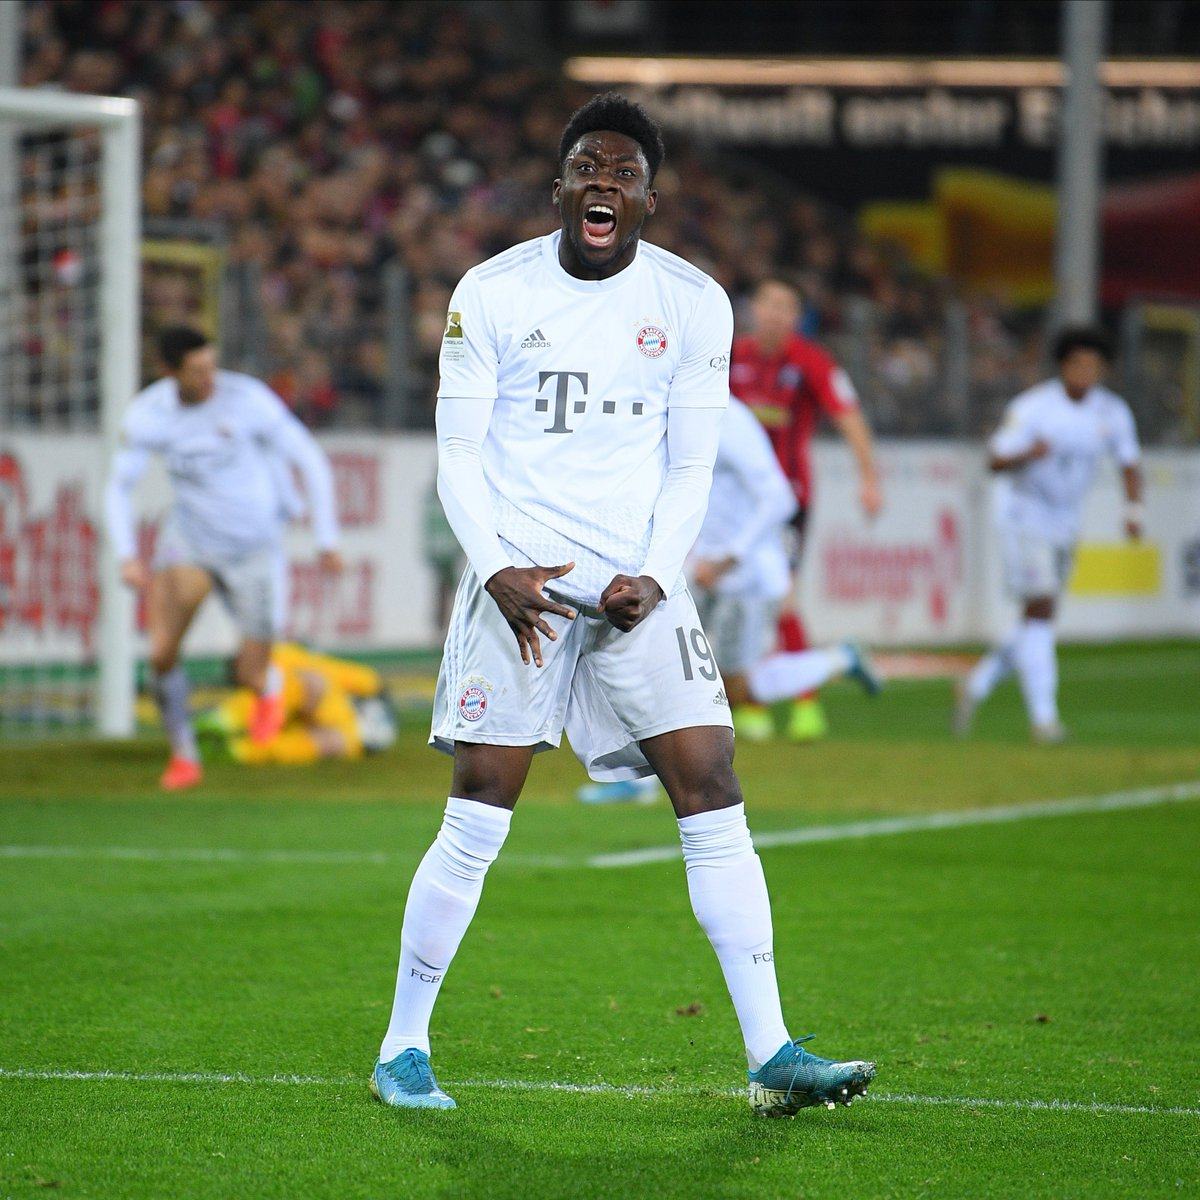 Introducing your 'Player of the Month' for December: @AlphonsoDavies! 👏#MiaSanMia #FCBayern